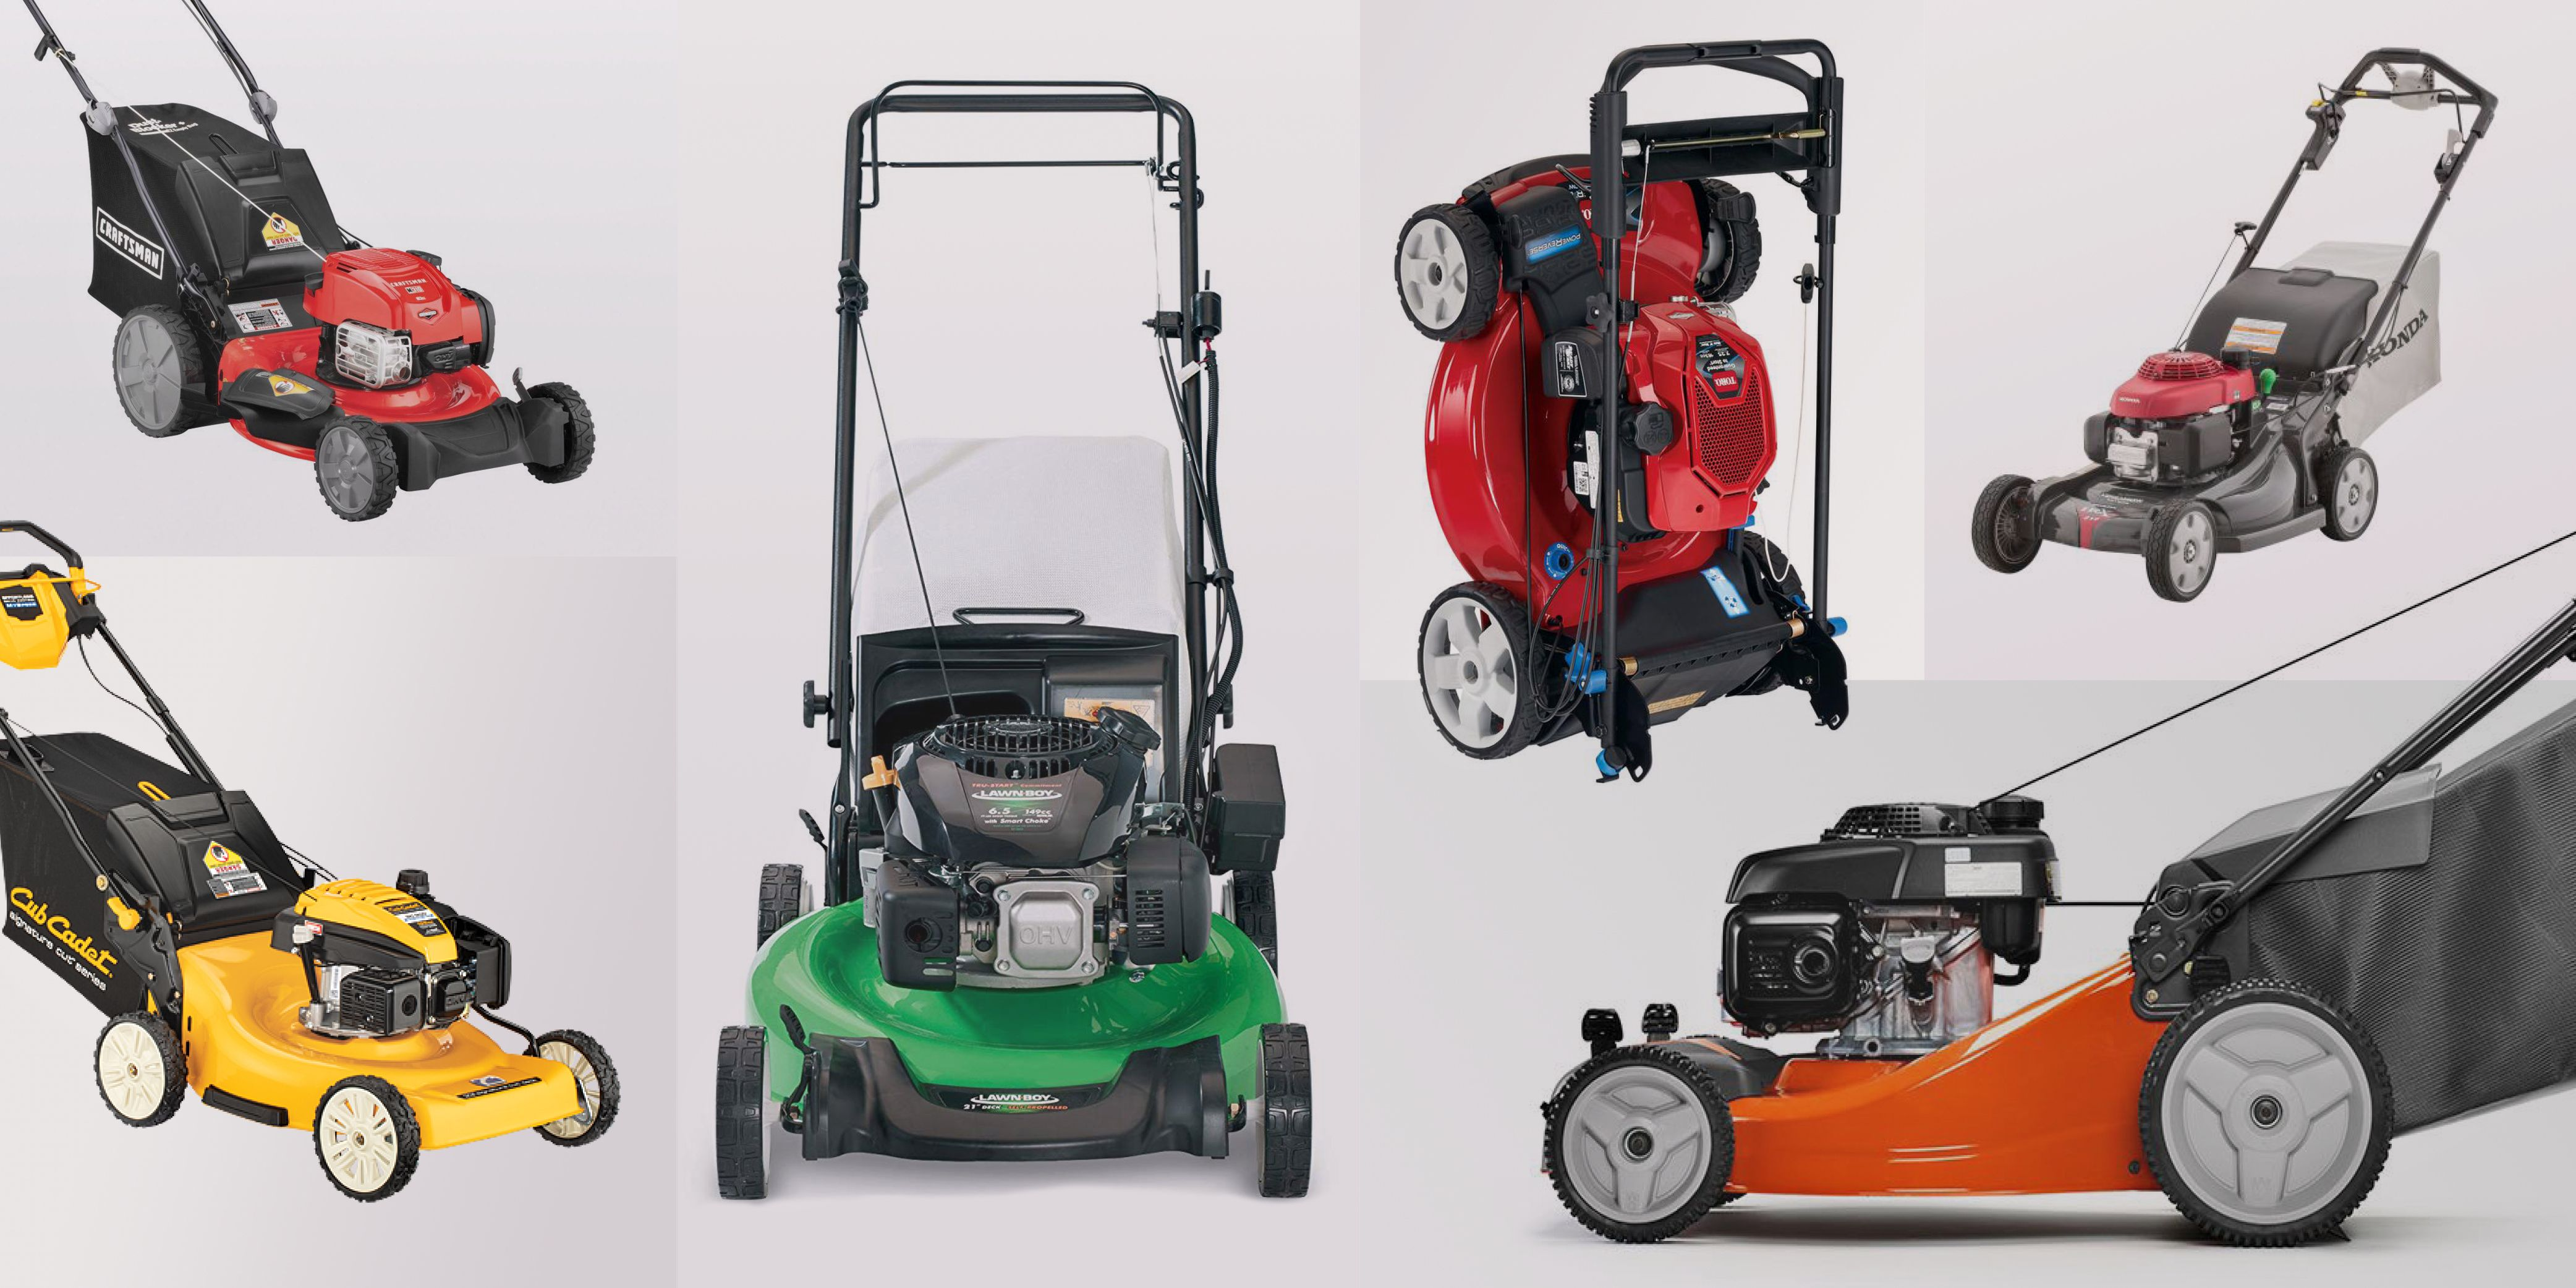 Toro Lawn Mower Bag Problems Holiday Hours